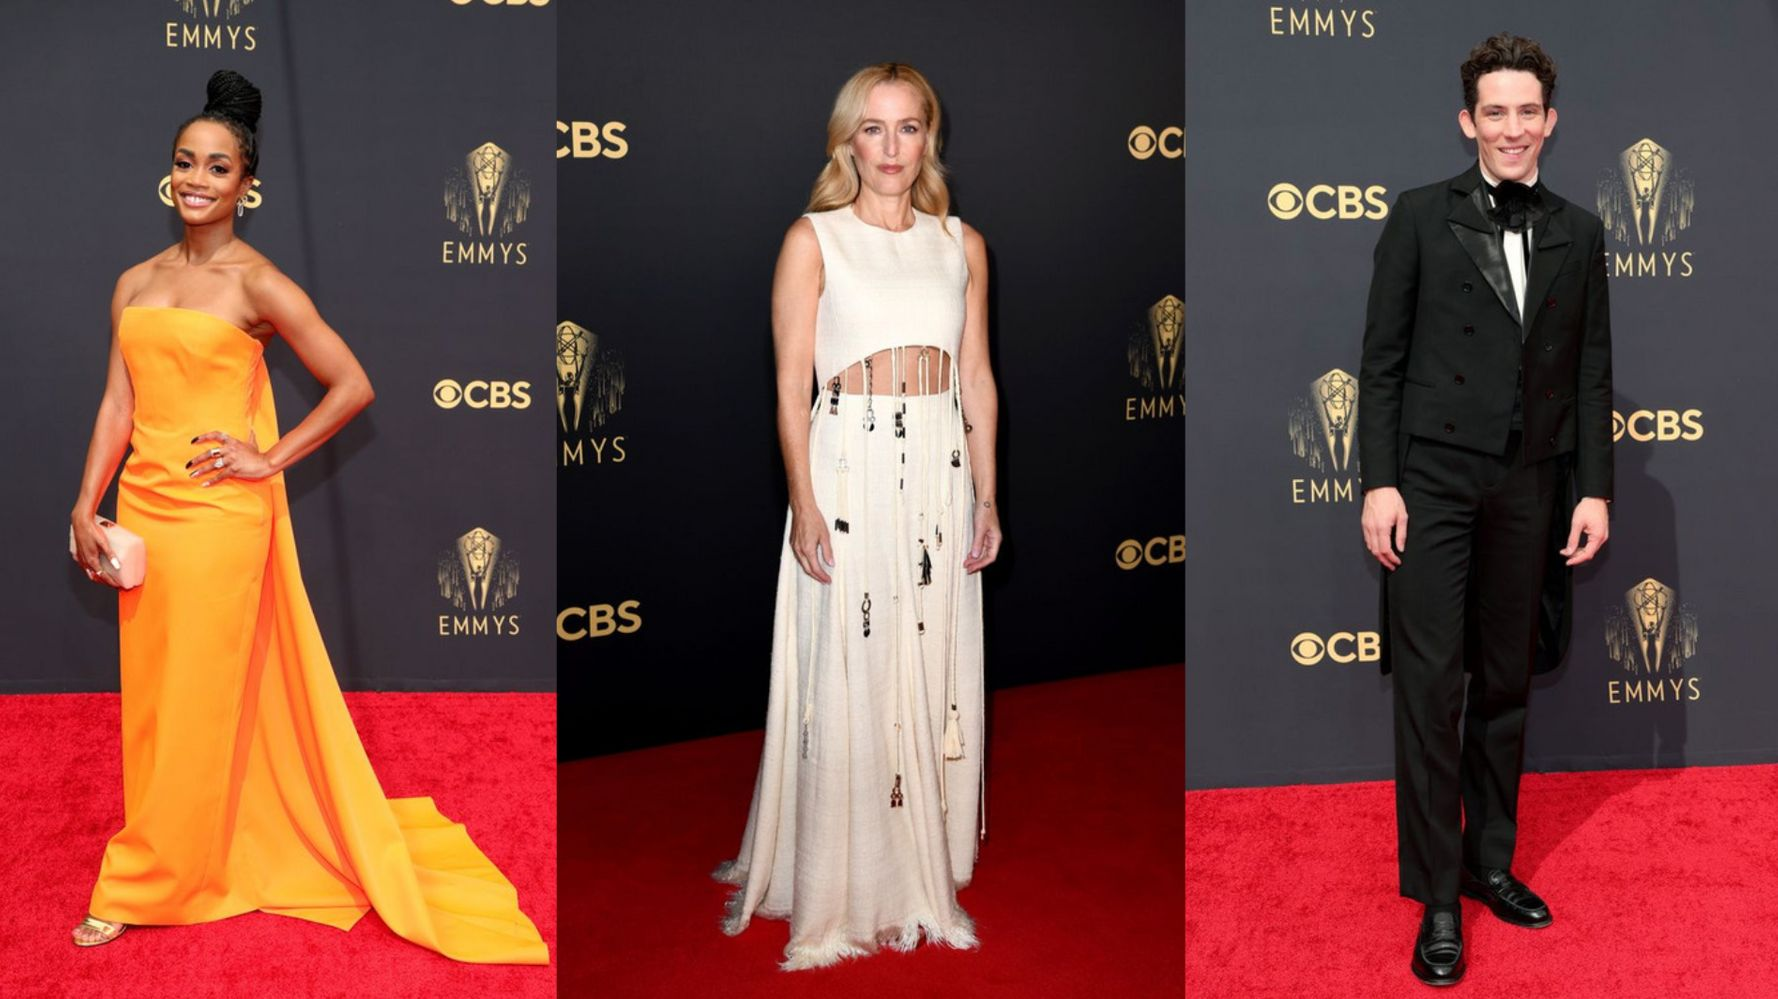 Emmy Awards 2021: See What The Best-Dressed Celebrities Wore On The Red Carpet